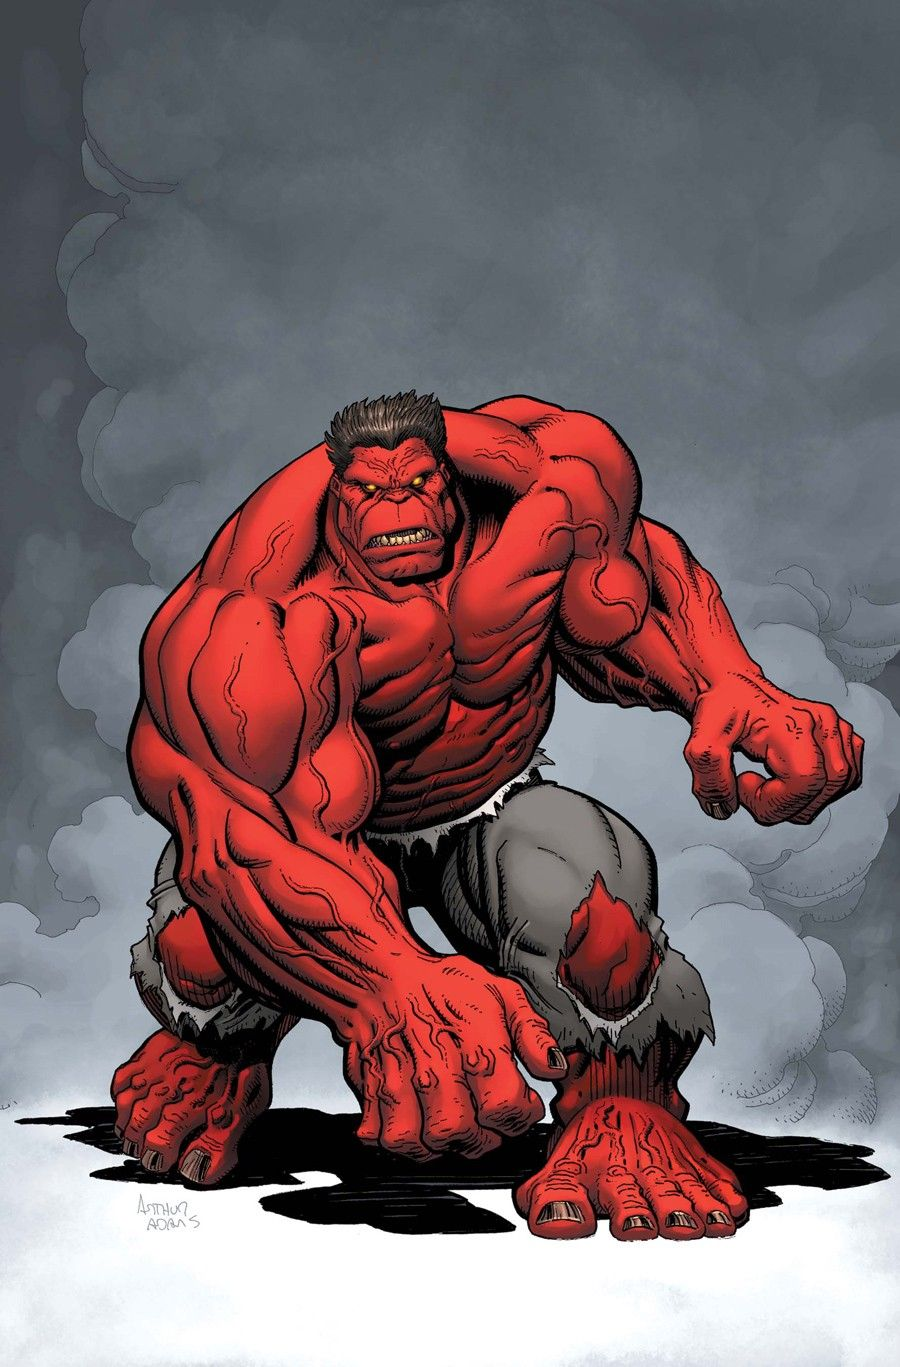 savage rulk | Hulk art, Red hulk, Hulk marvel